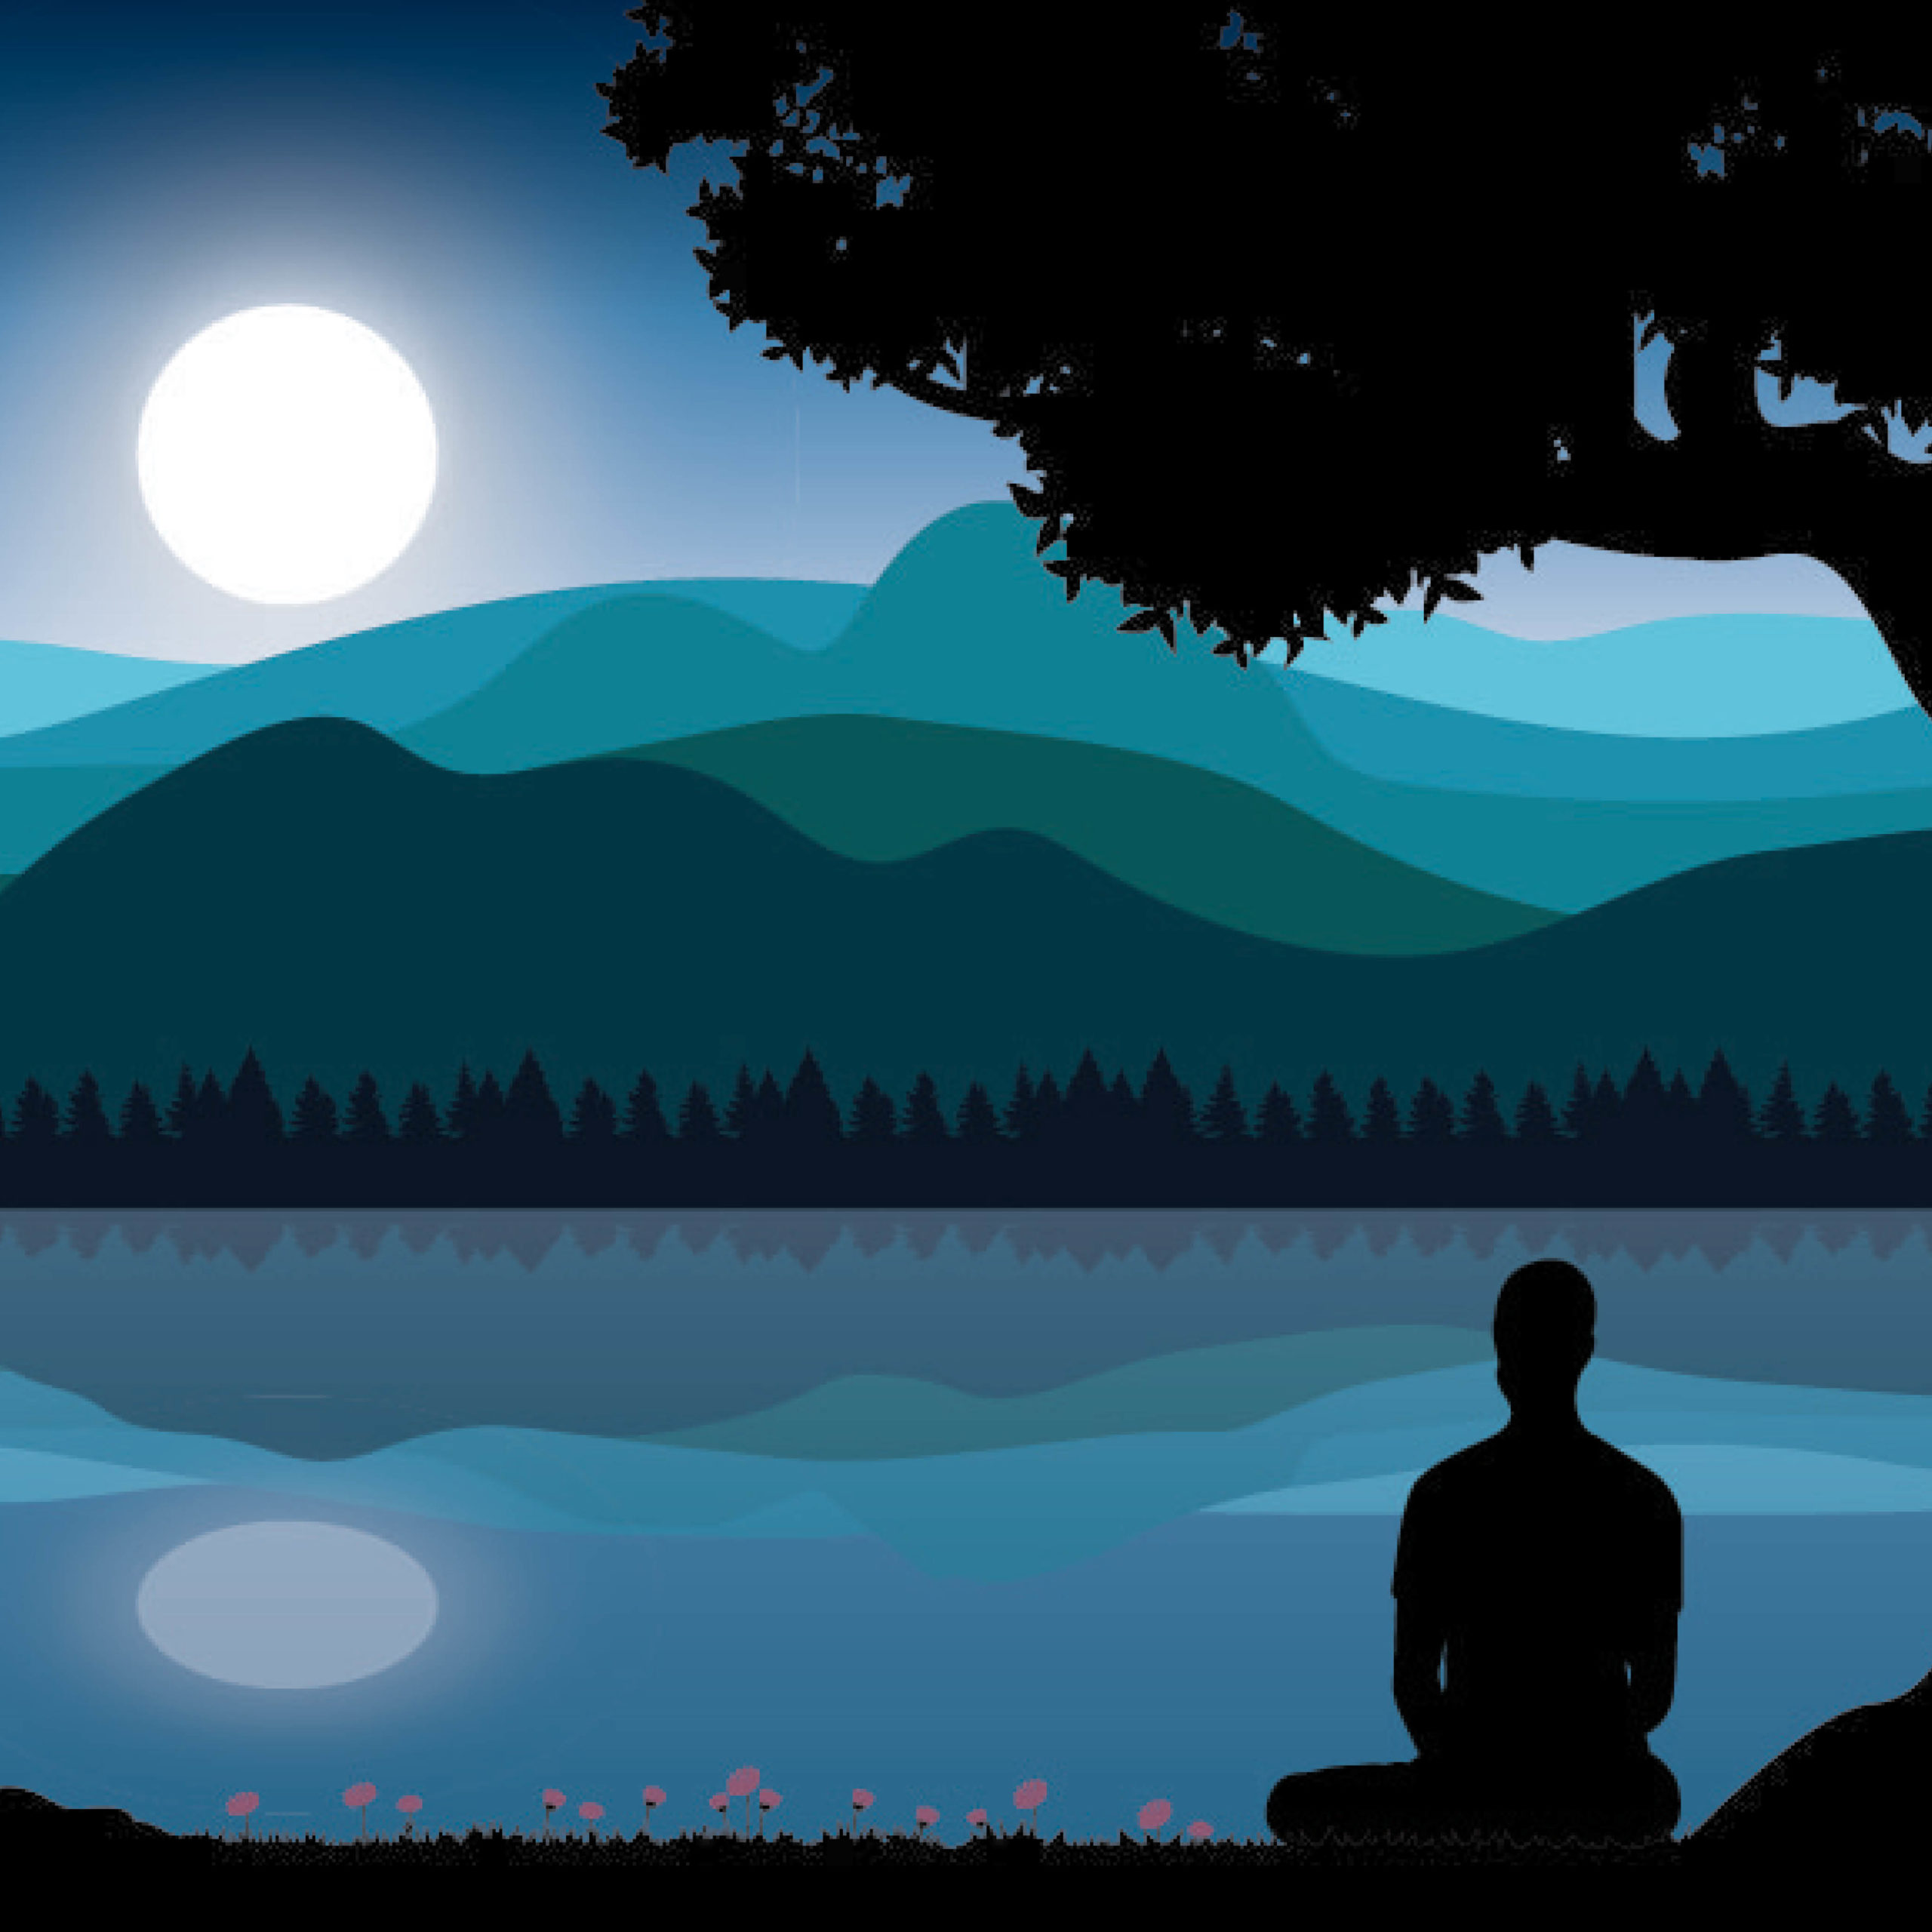 man meditating under a tree with the moon in the background as a metaphor for the path to pure happiness